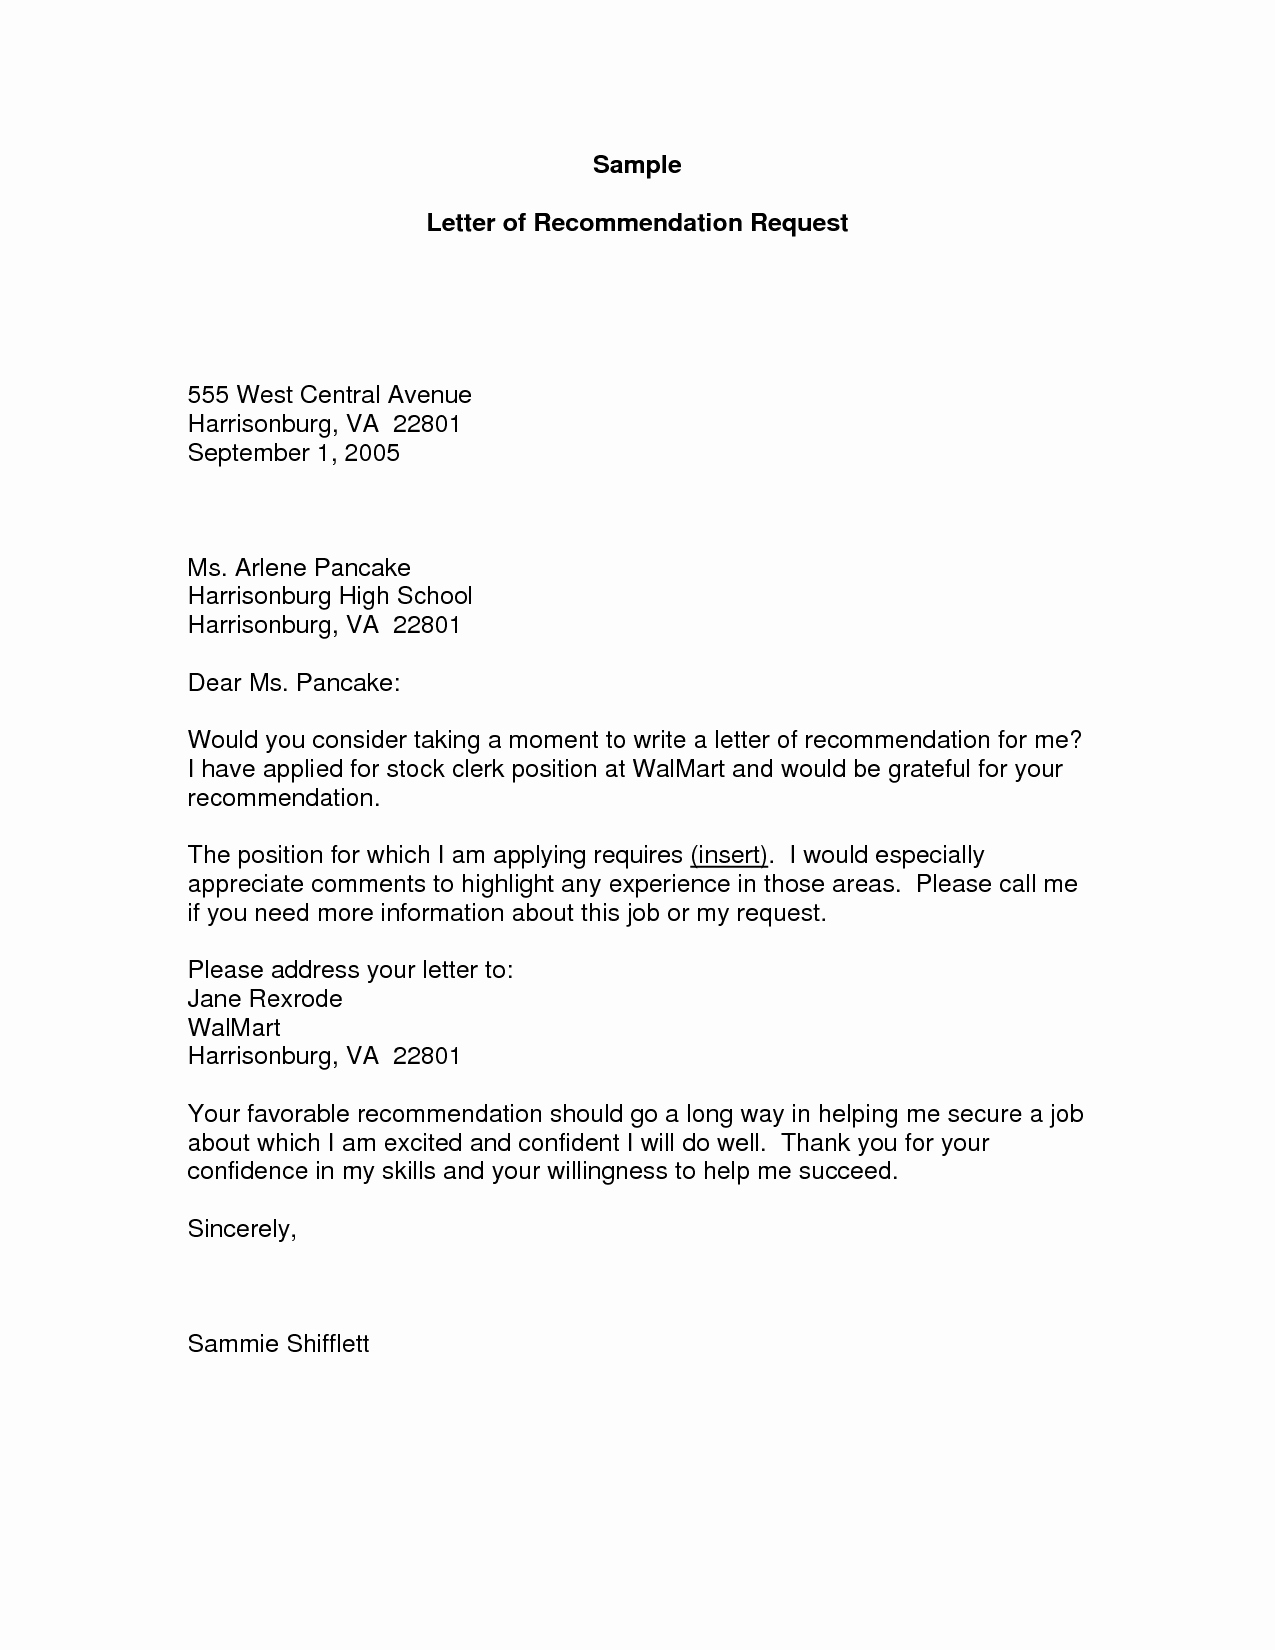 Asking for Recommendation Letter Sample Unique Letter Re Mendation Request Letter Of Re Mendation